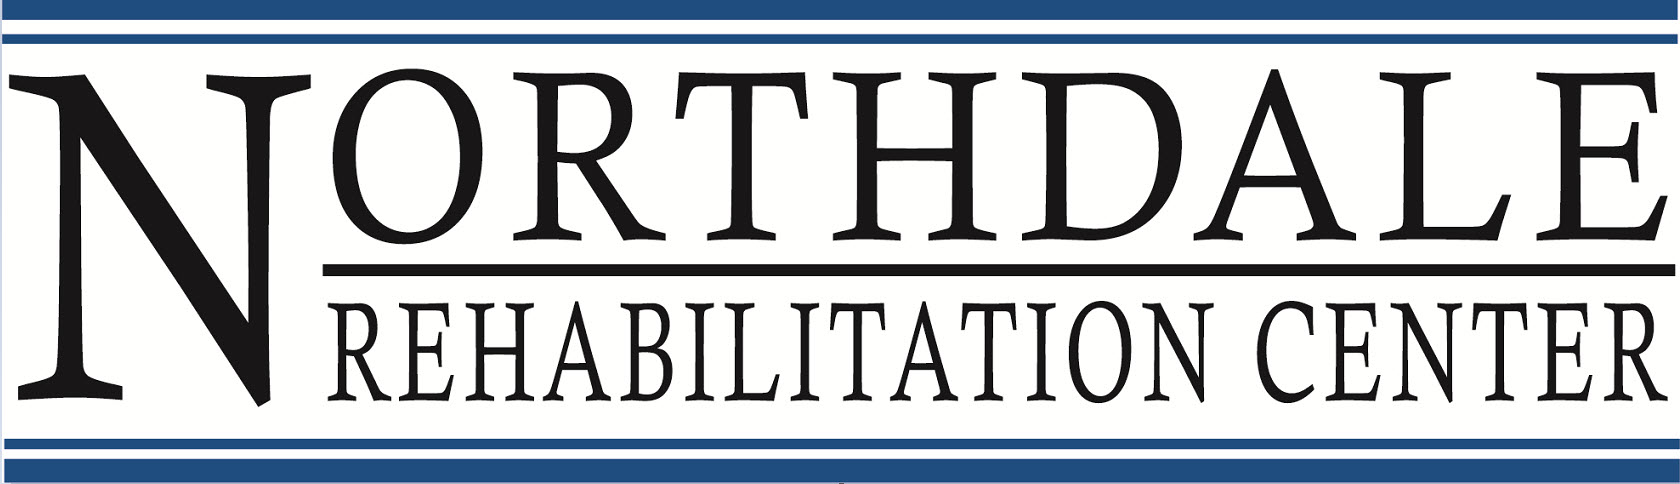 Northdale Rehabilitation Center